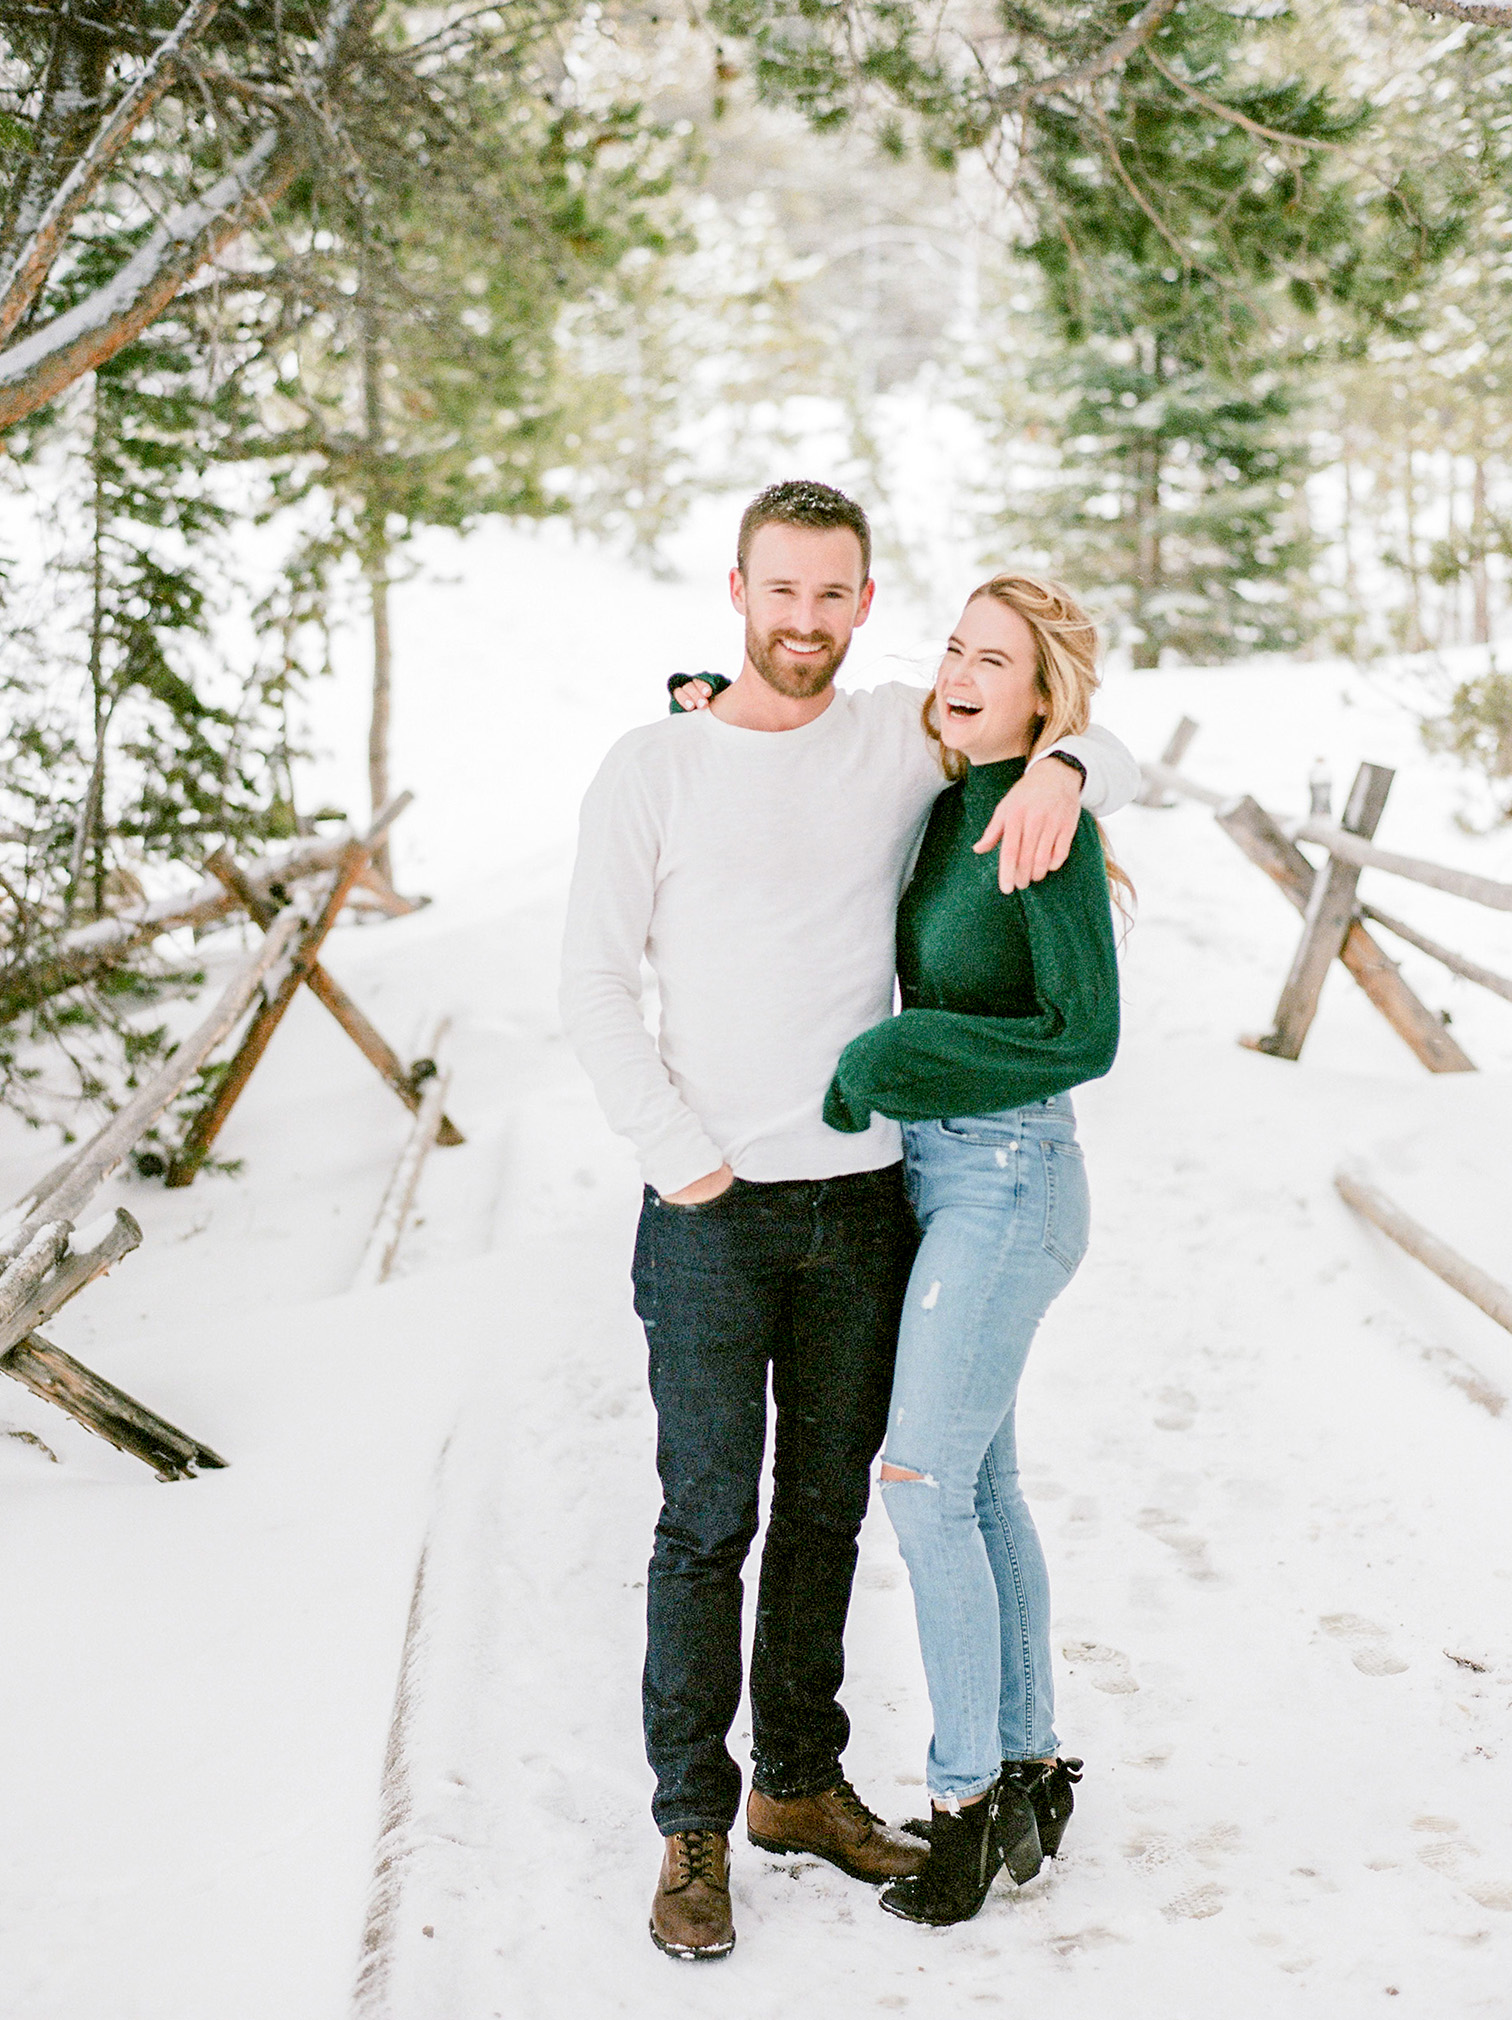 Bear Lake - Rocky Mountain National Park Engagement Photos, Estes Park Colorado